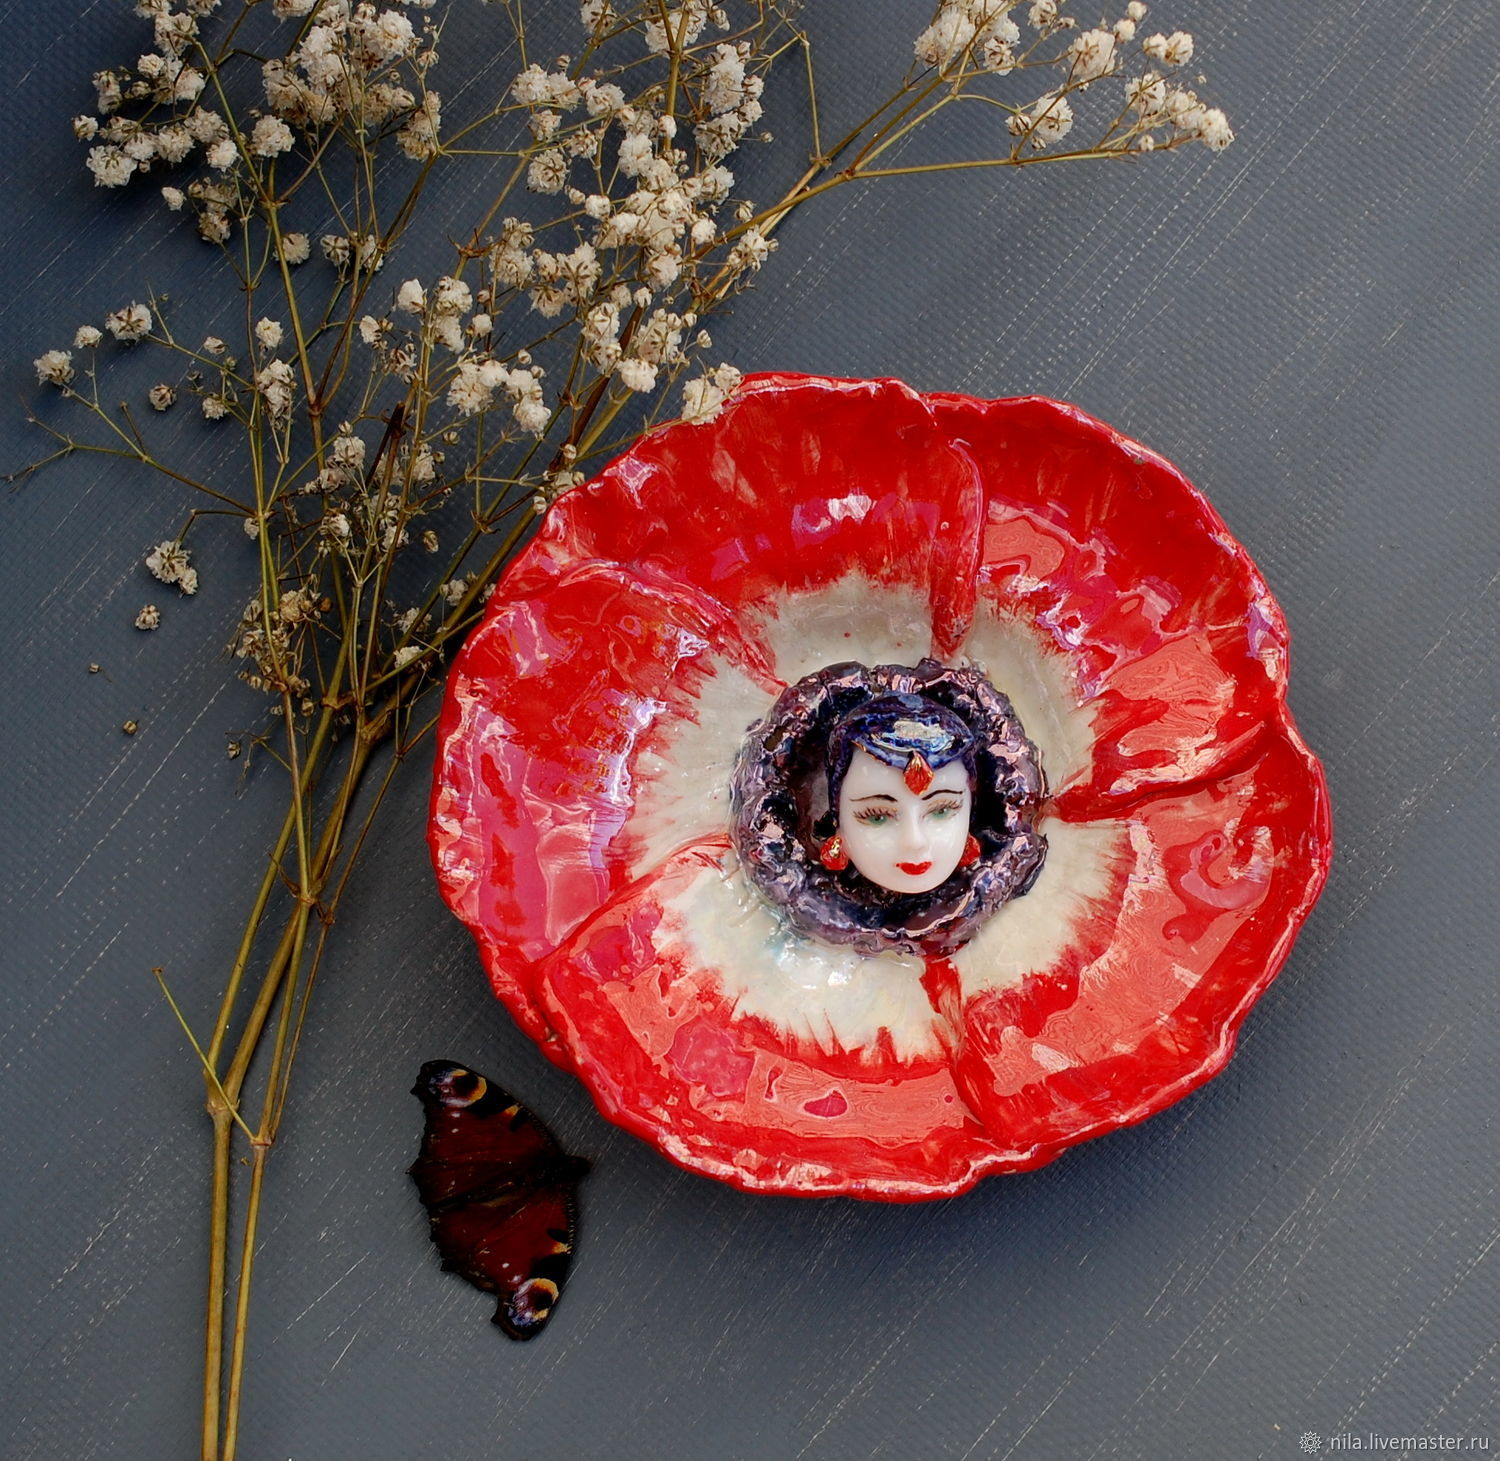 Poppy Fairy Vase Shop Online On Livemaster With Shipping